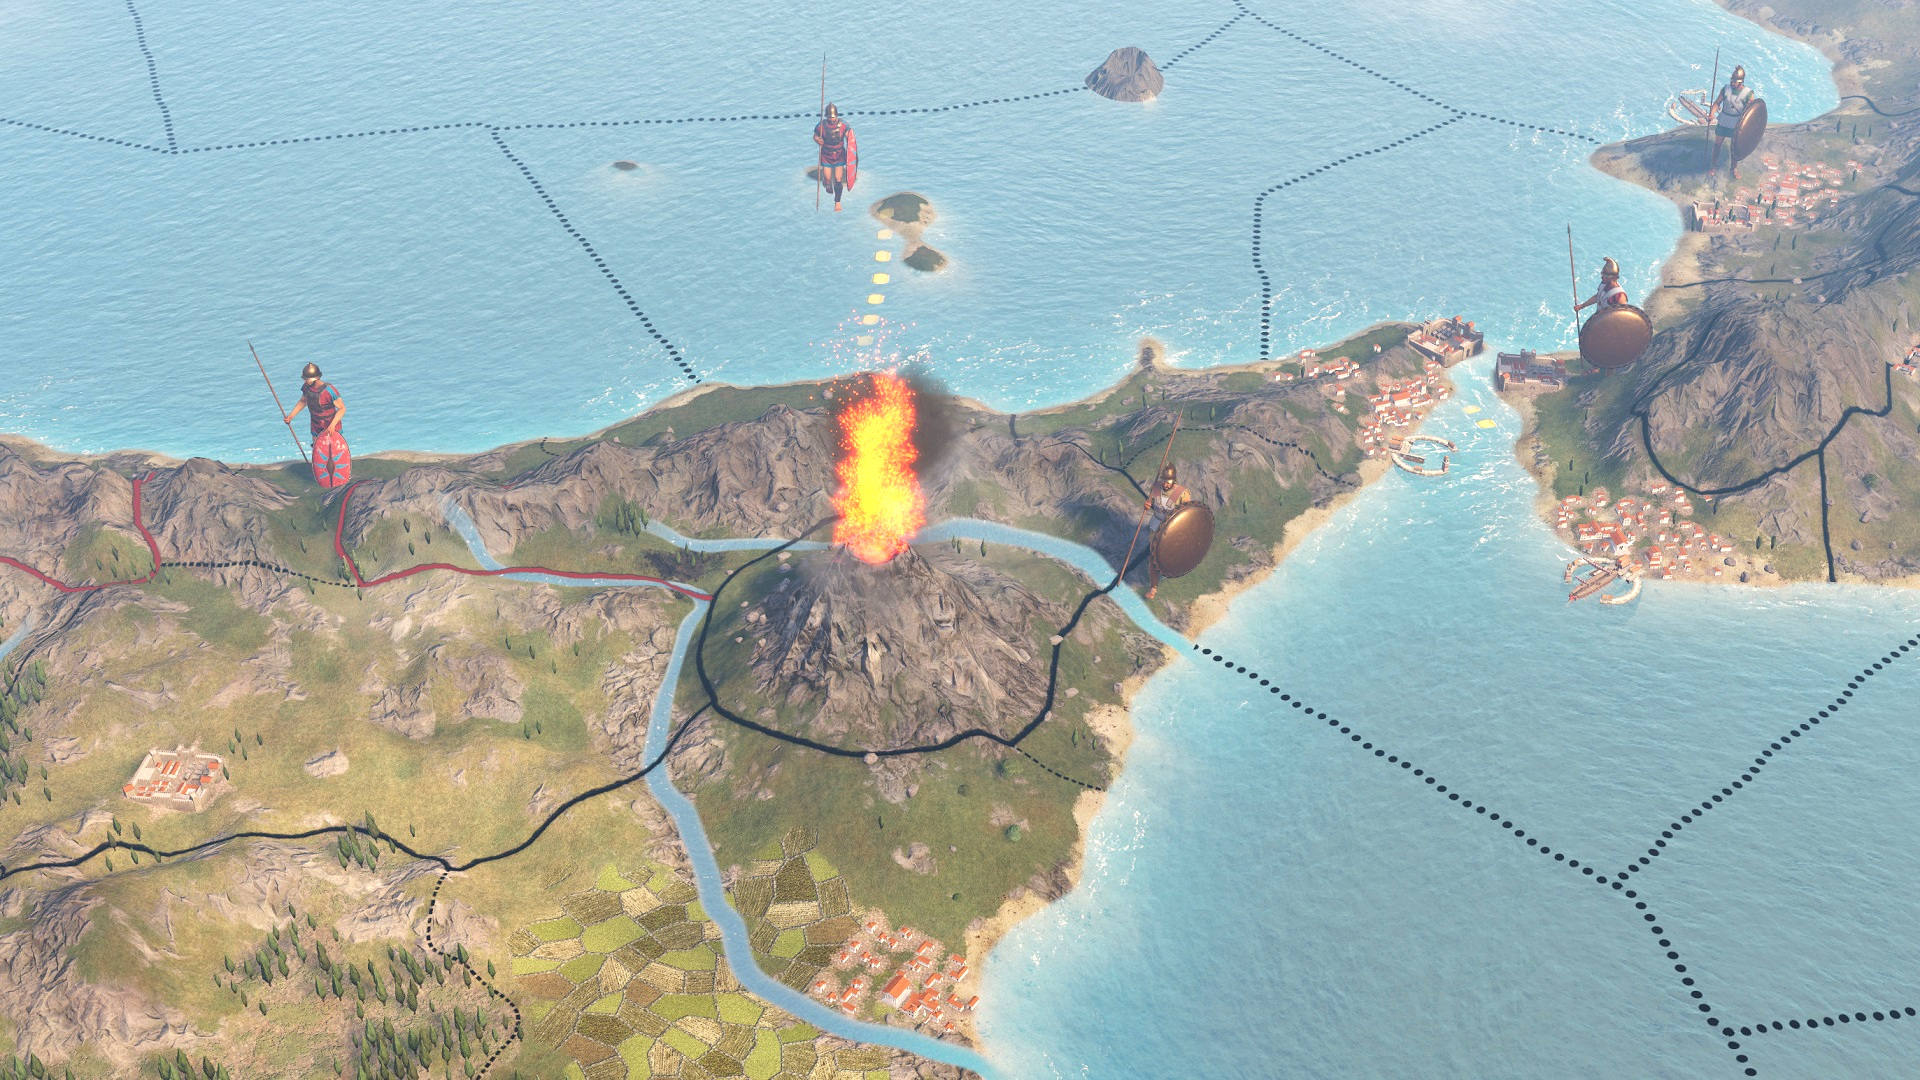 Grand strategy game Imperator: Rome gets large modpack that will keep the torch alive